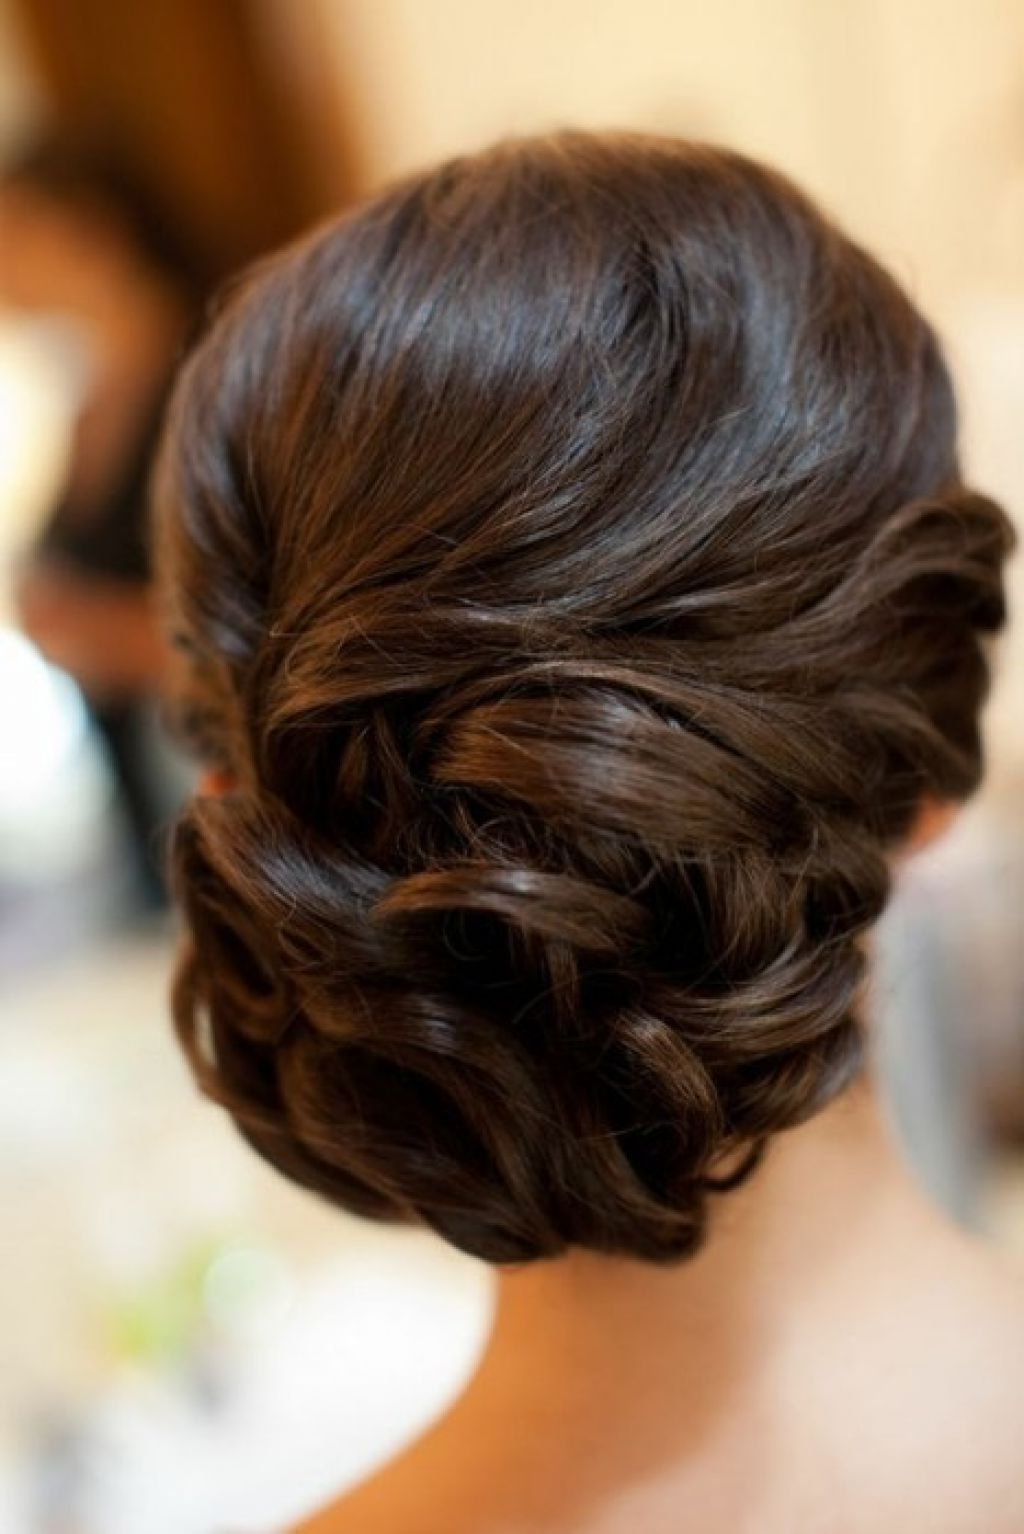 2018 Chignon Wedding Hairstyles For Long Hair In Twisted Sock Bun Updo Hairstyle Long Hair Tutorial Unbelievable (View 3 of 15)